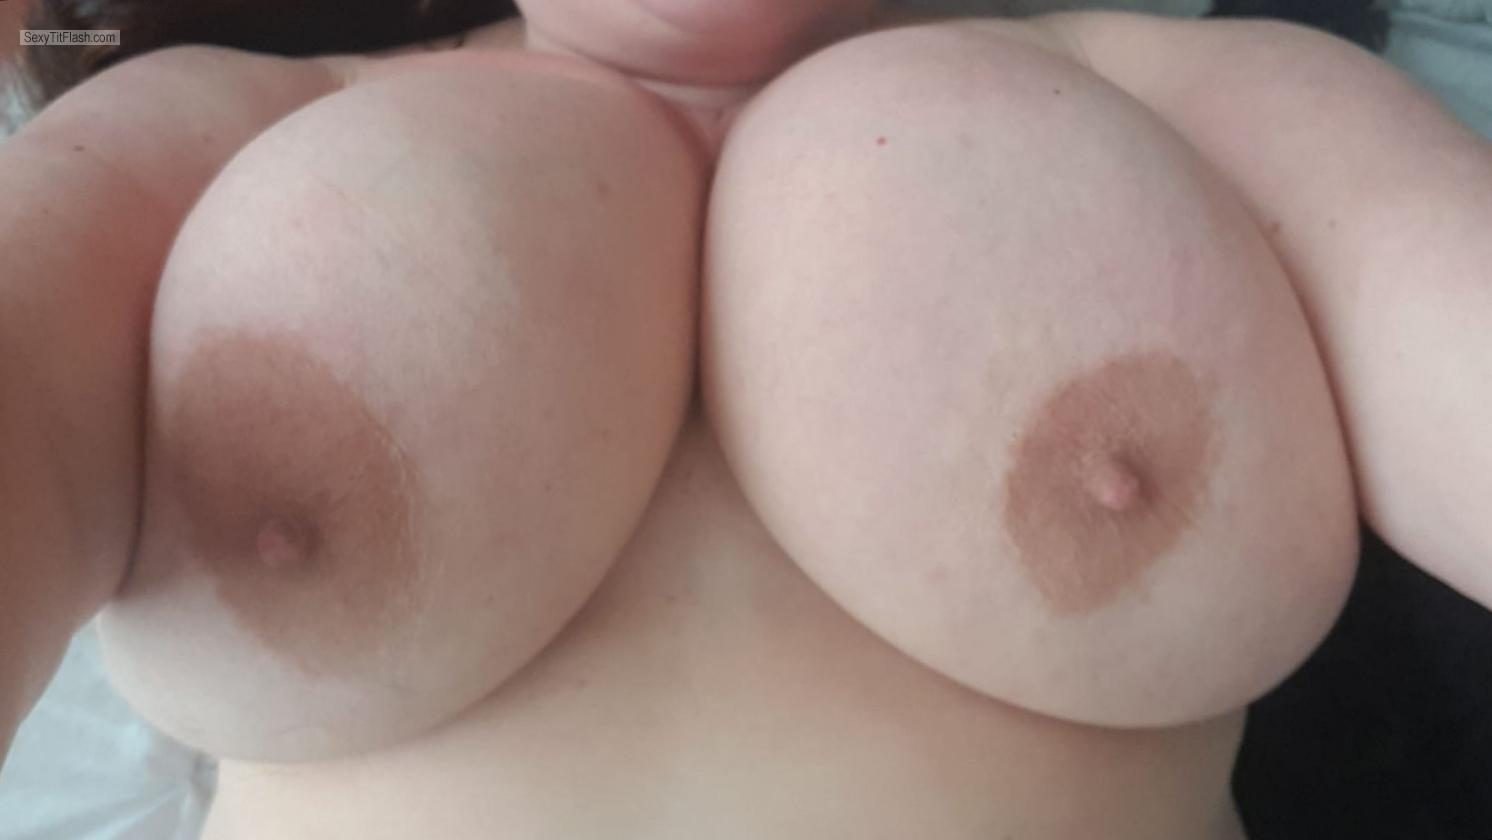 Tit Flash: My Extremely Big Tits (Selfie) - Hot Tits from United States